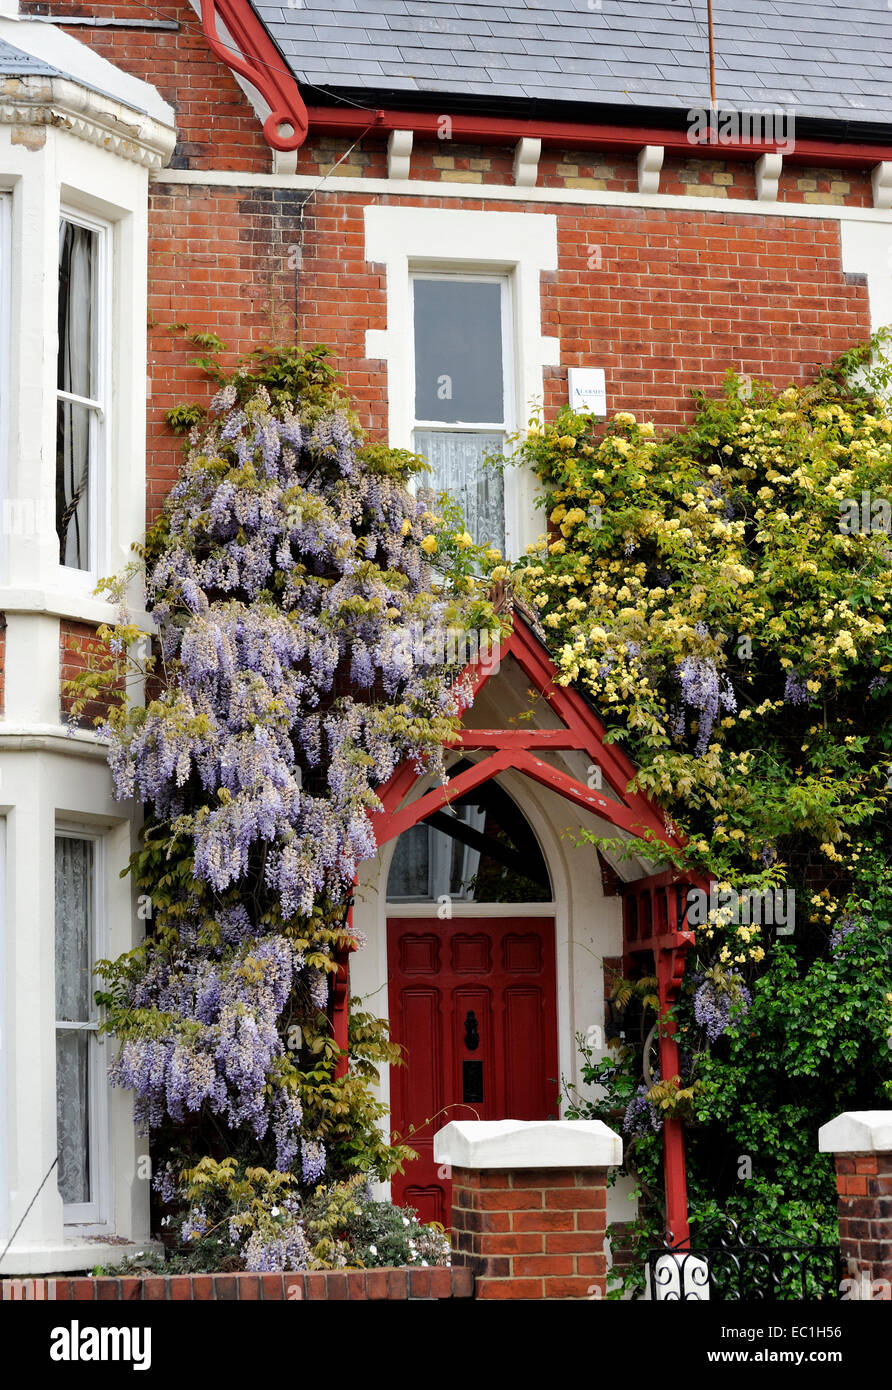 27 Victoria Grove, Southsea, Portsmouth. The home of Frances (Fanny) Eleanor Trollope (d.1913), traveller, writer - Stock Image